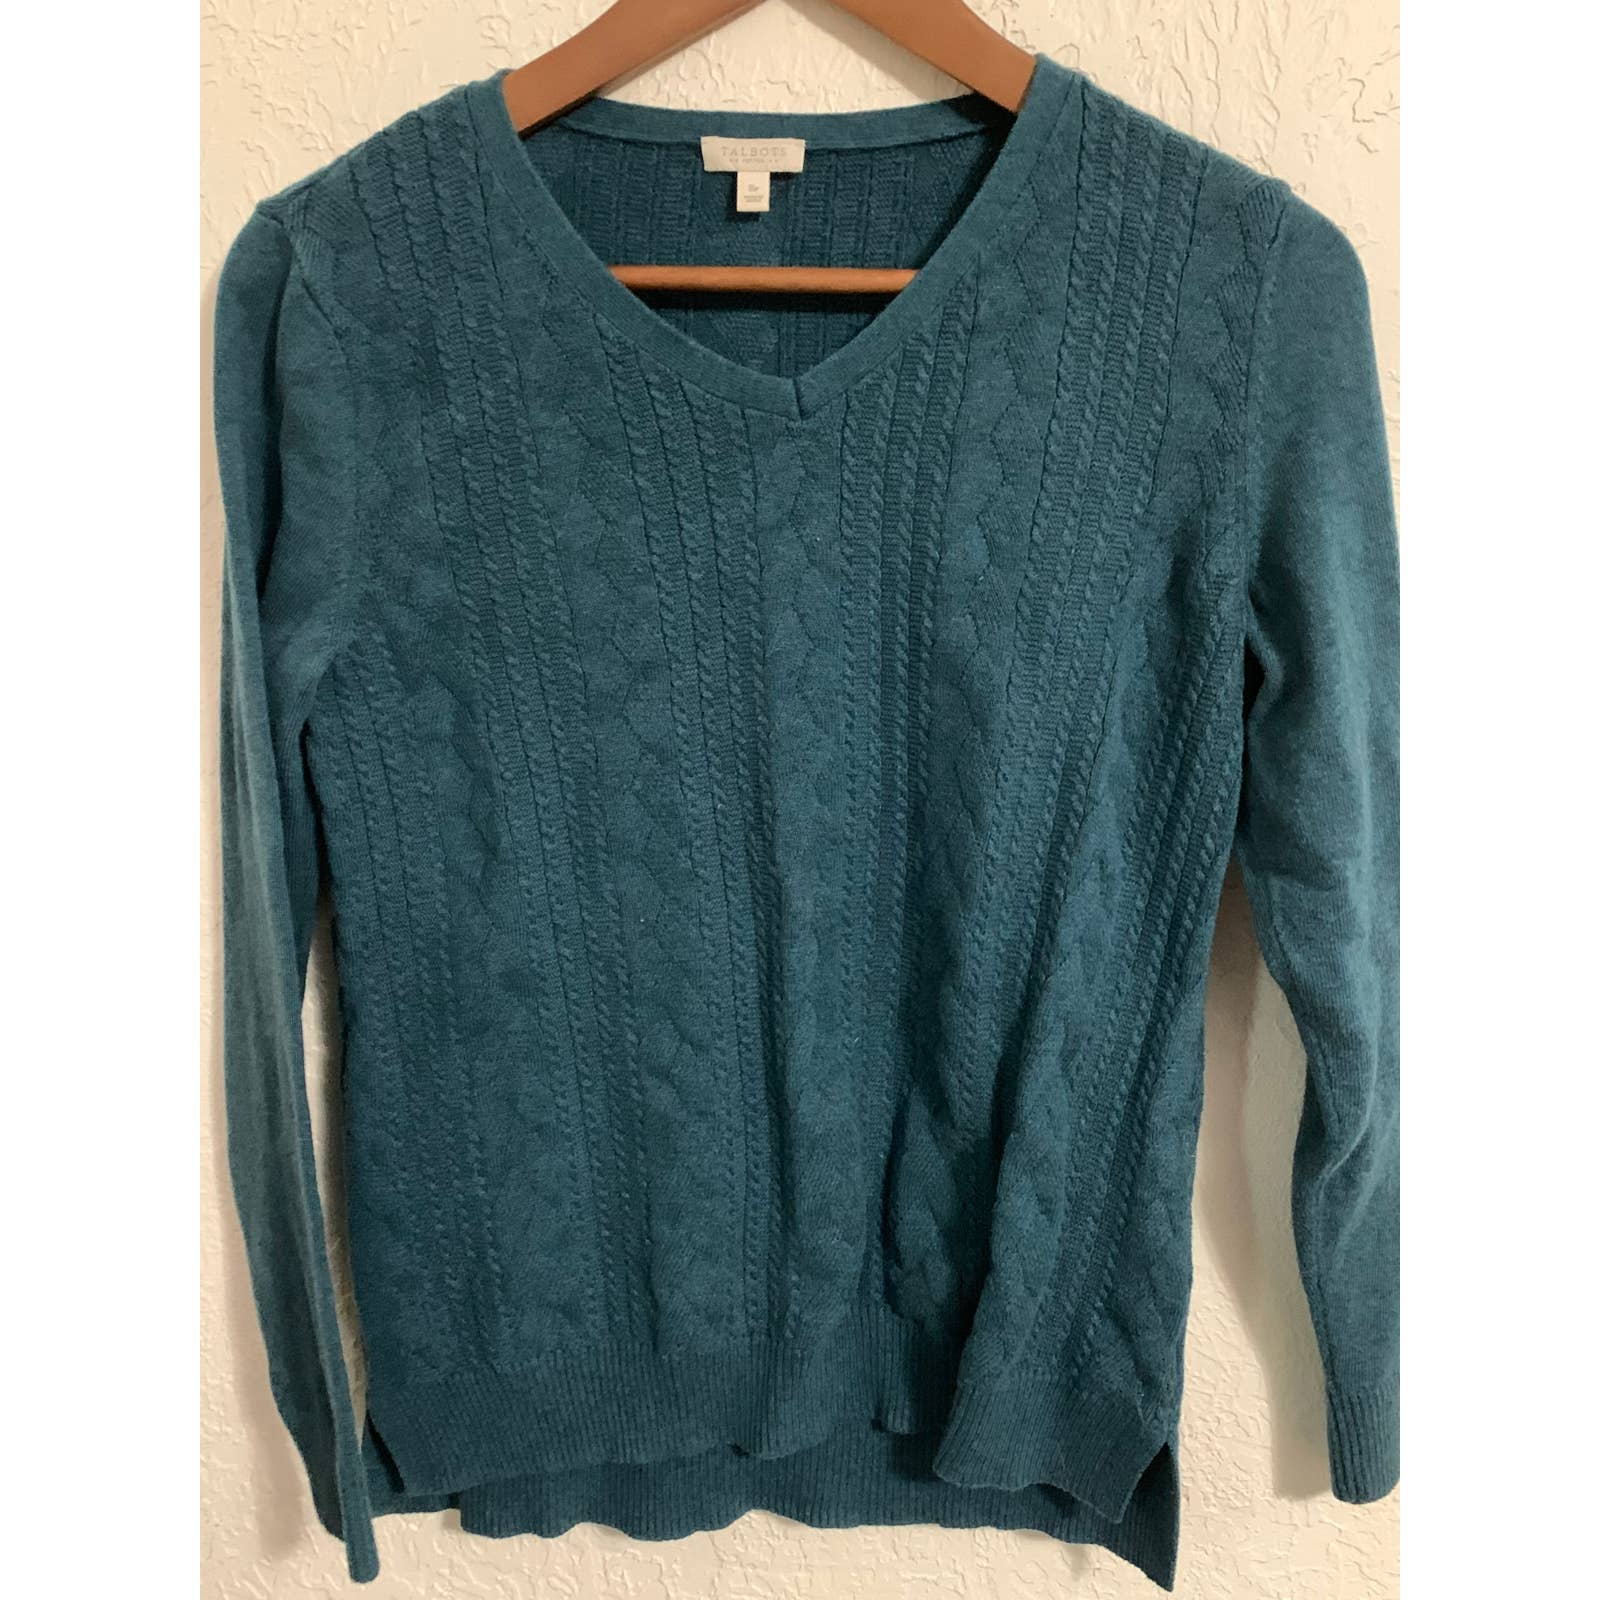 Product Image 1 - Talbots blue cable knit sweater